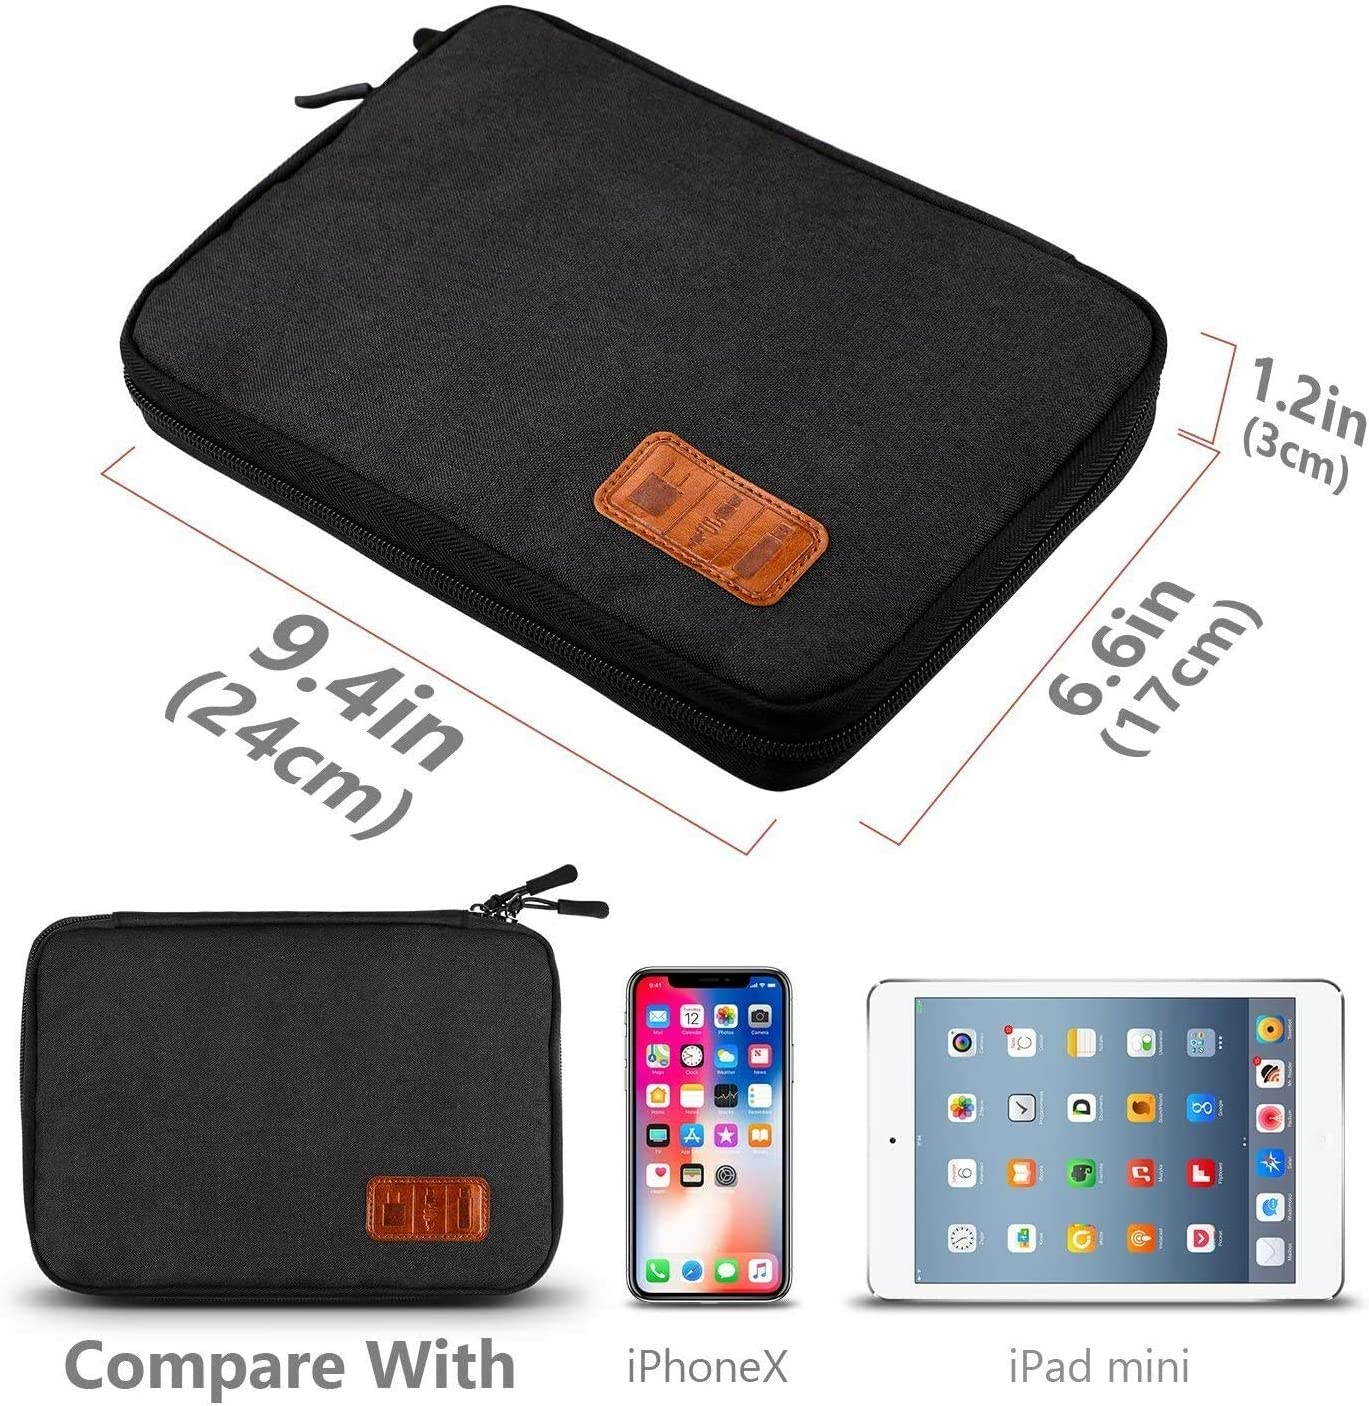 Travel Cable Organizer Bag, T TERSELY Travel Gadget Cables Electronics Accessories Organizer Bag,Portable Tech Gear Phone Accessories Carrying Storage Case Bag for Headphone Earphone USB (Black)